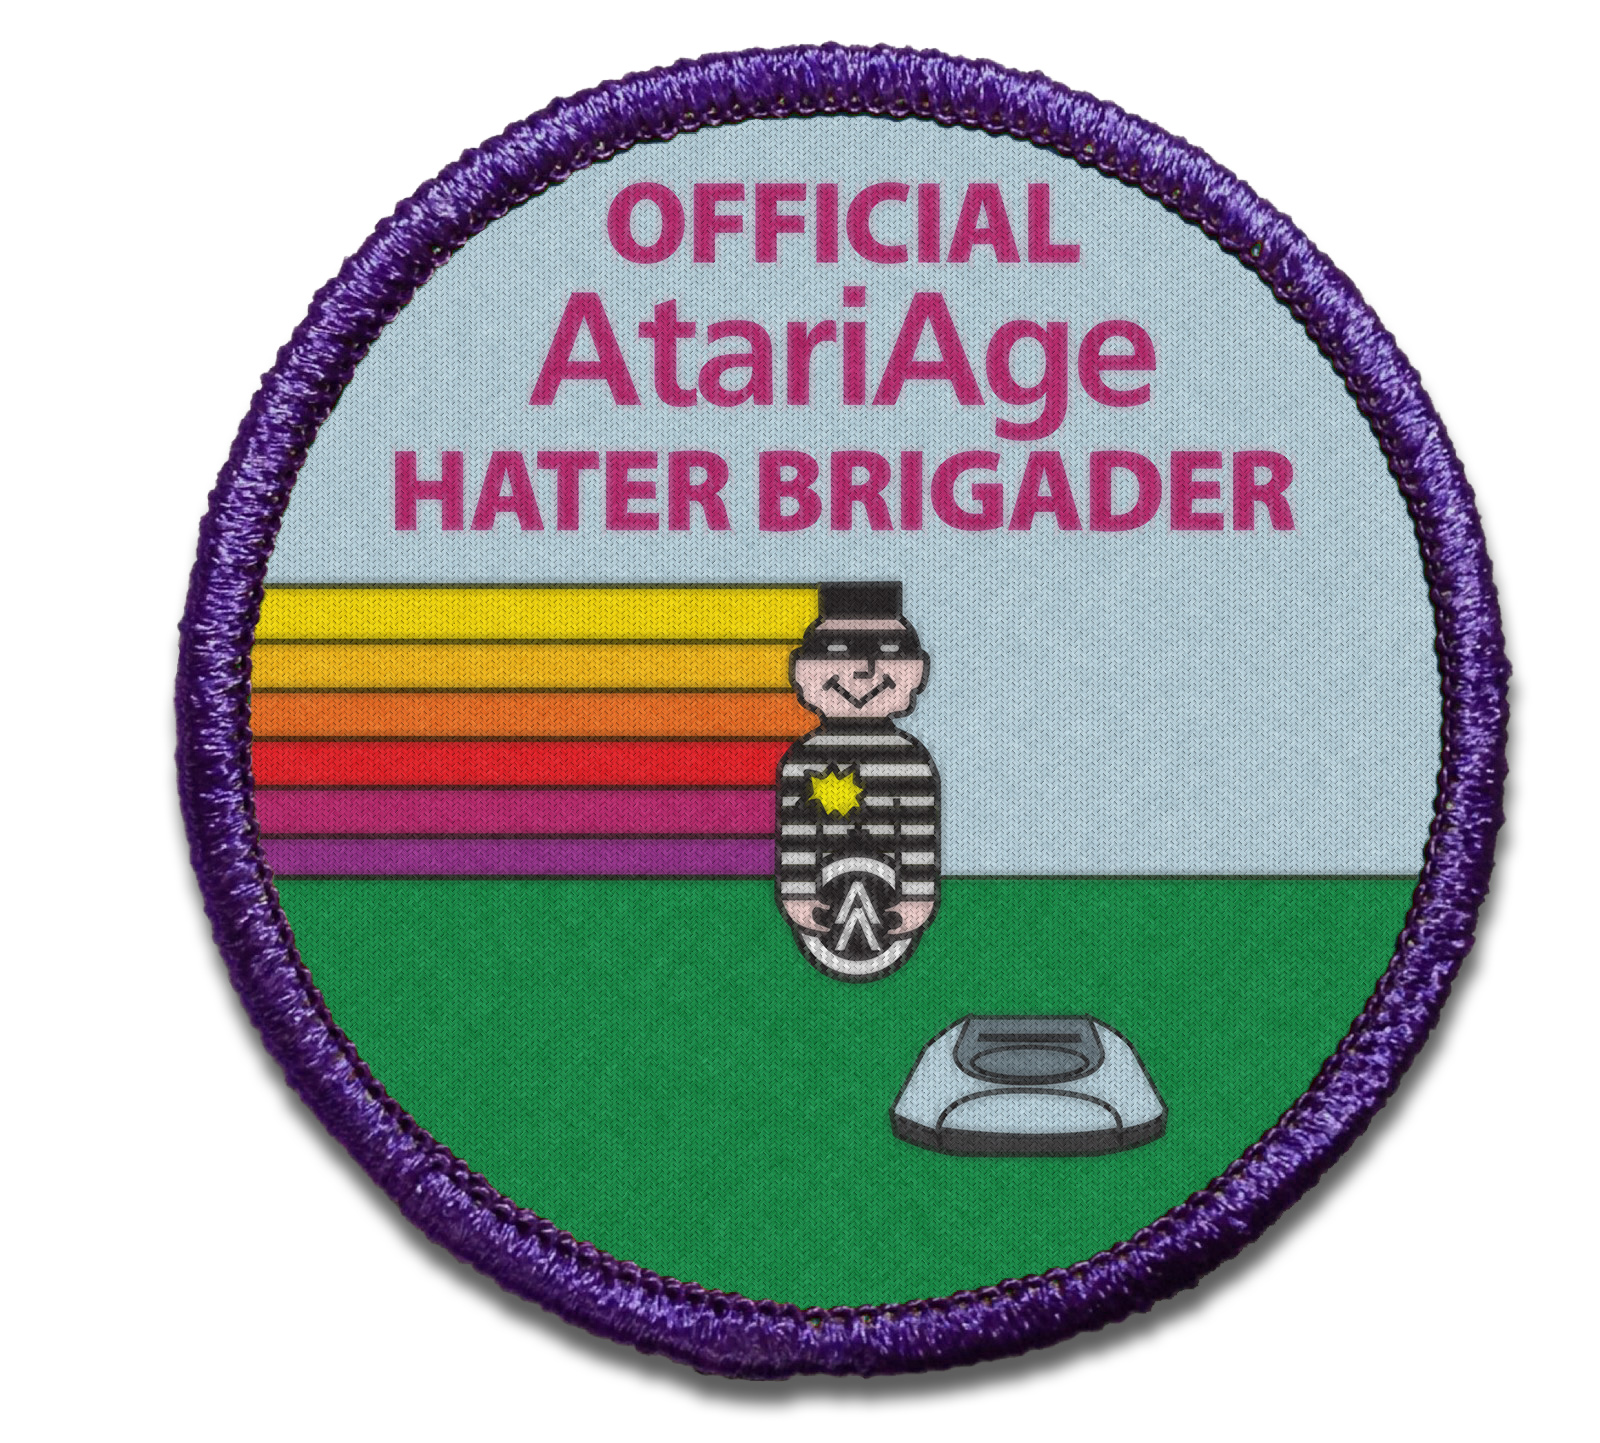 hater-brigader-patch-full.jpg